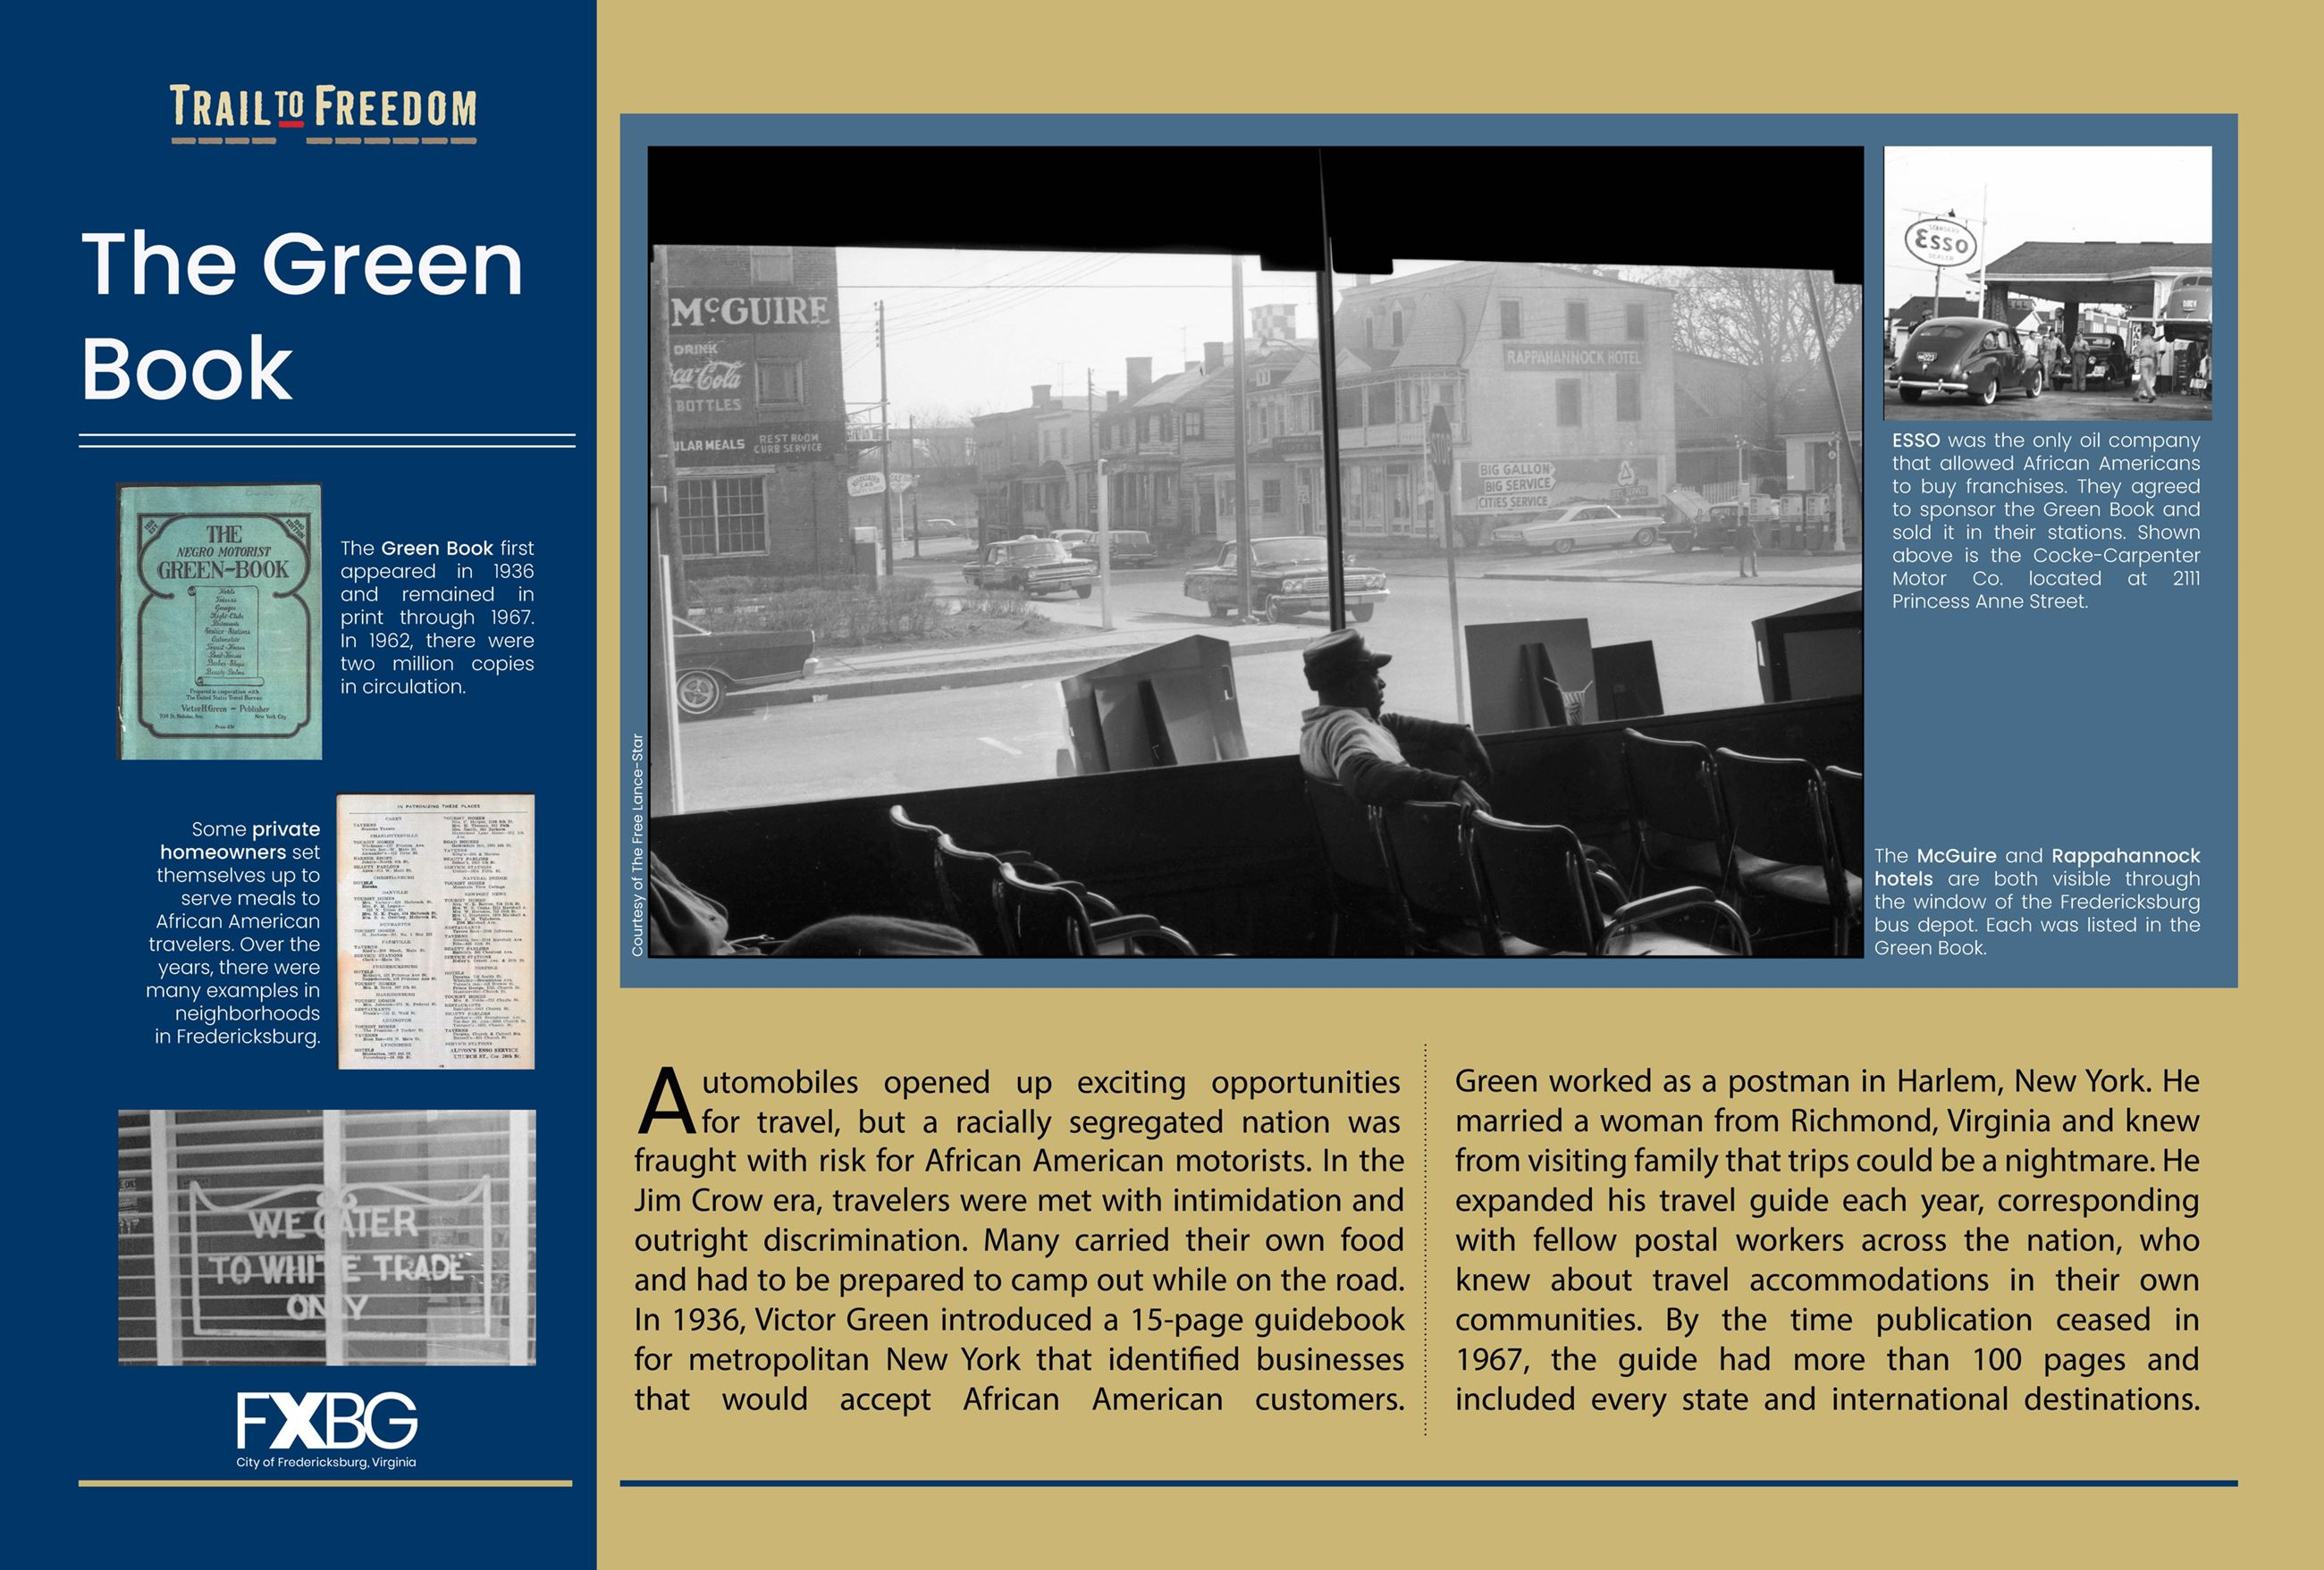 Fxbg_Wayside_Exhibit_Panel_GreenBook